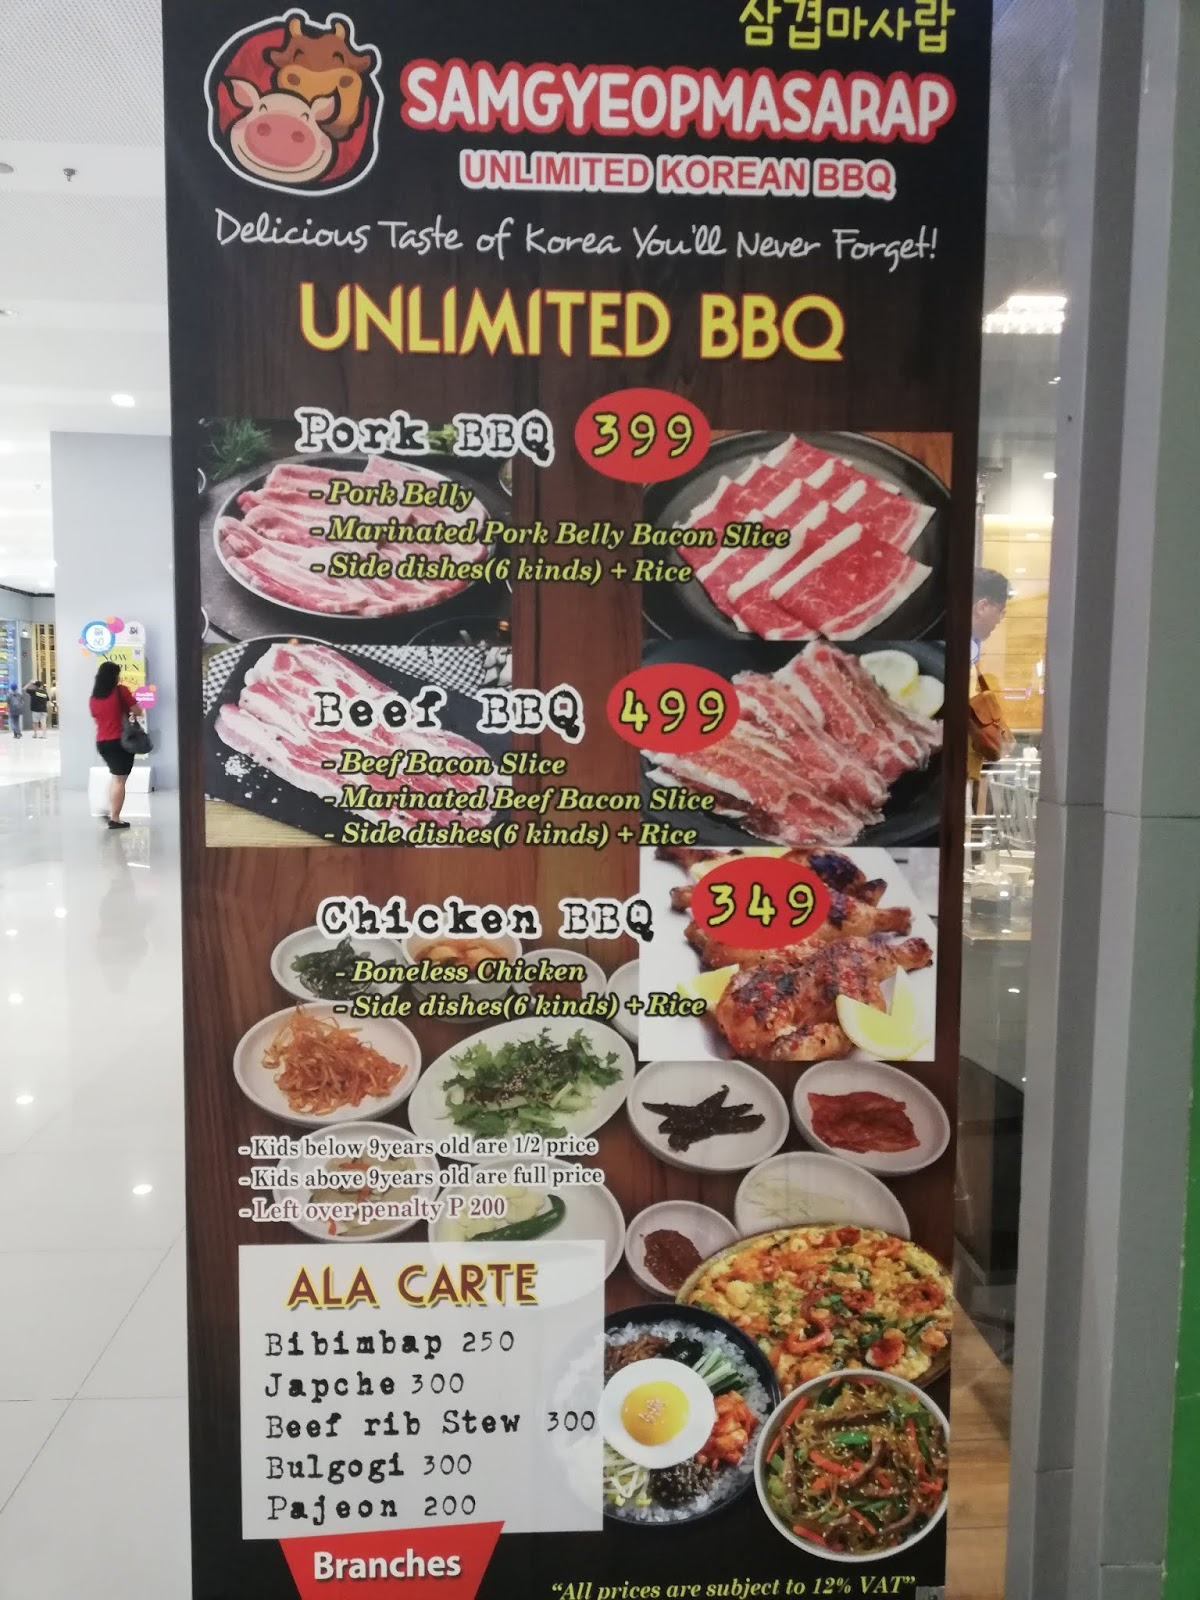 Welp Dining Review: Samgyeopmasarap Unlimited Korean BBQ UT-61